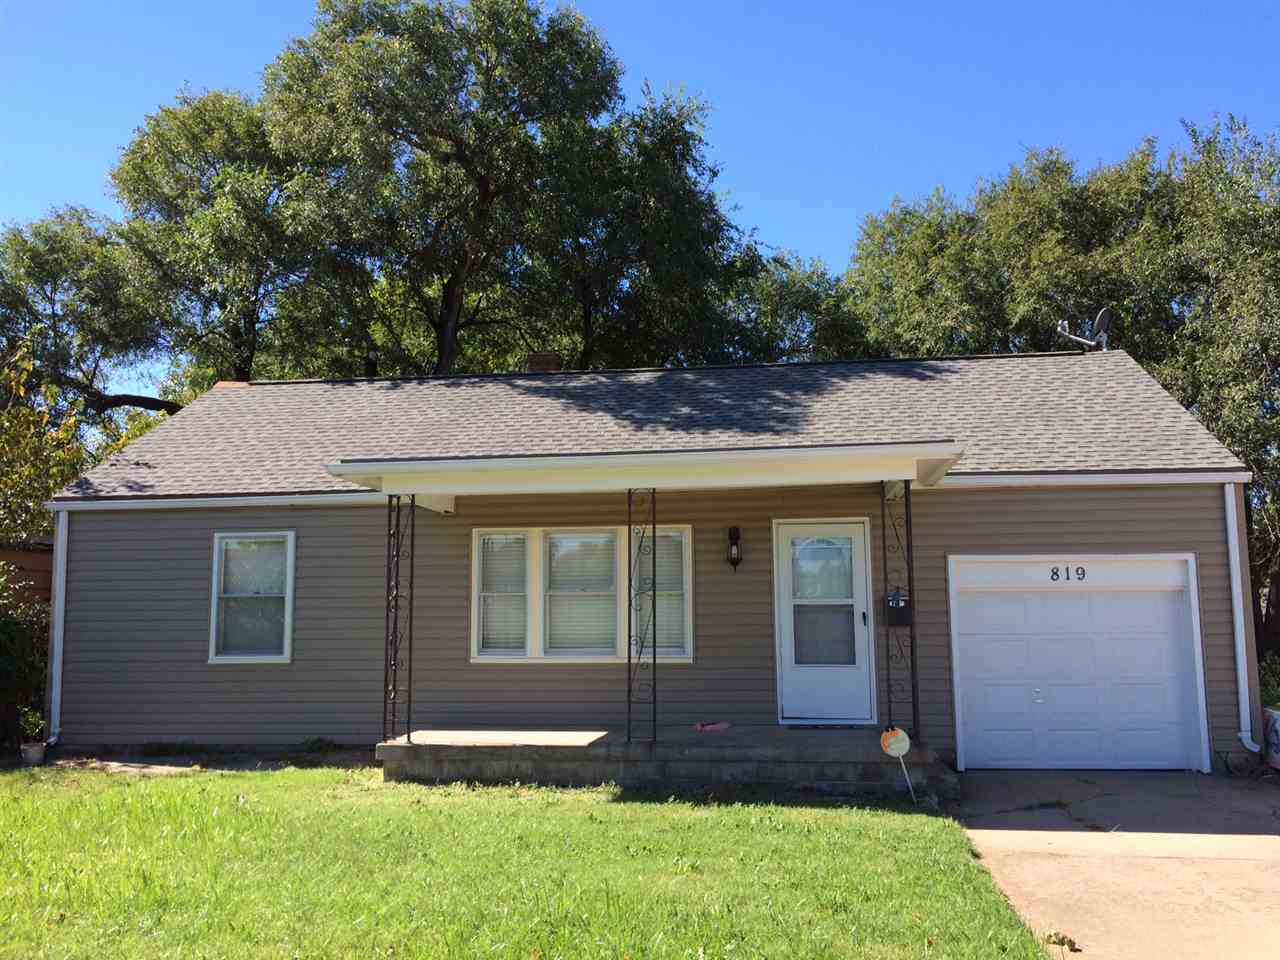 819 S Clifton Ave, Wichita, KS 67218